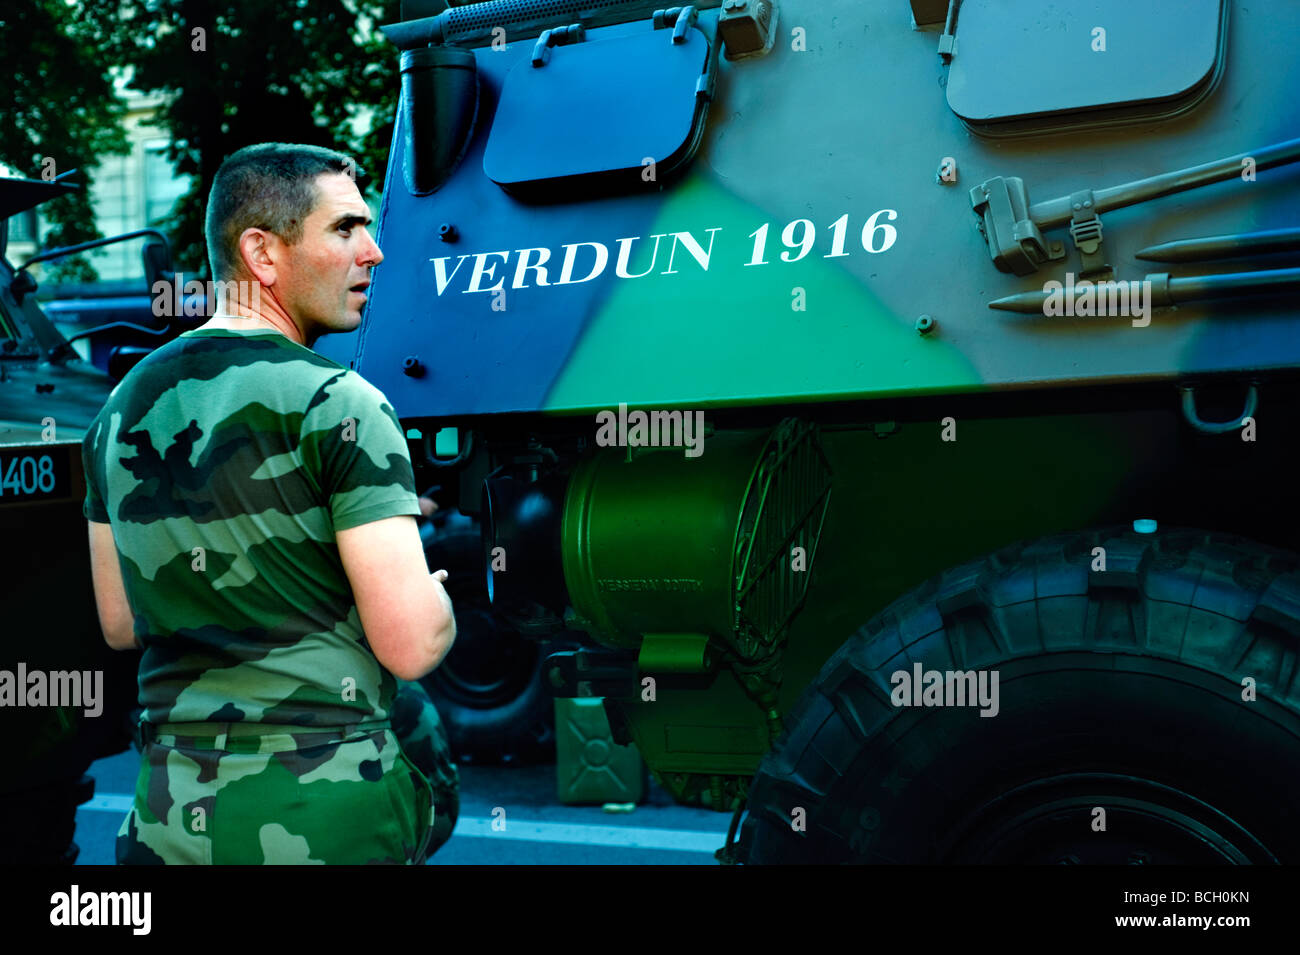 Paris France, Public  Events 'Bastille Day' Celebration '14th of July' Military Parade on the 'Champs - Stock Image